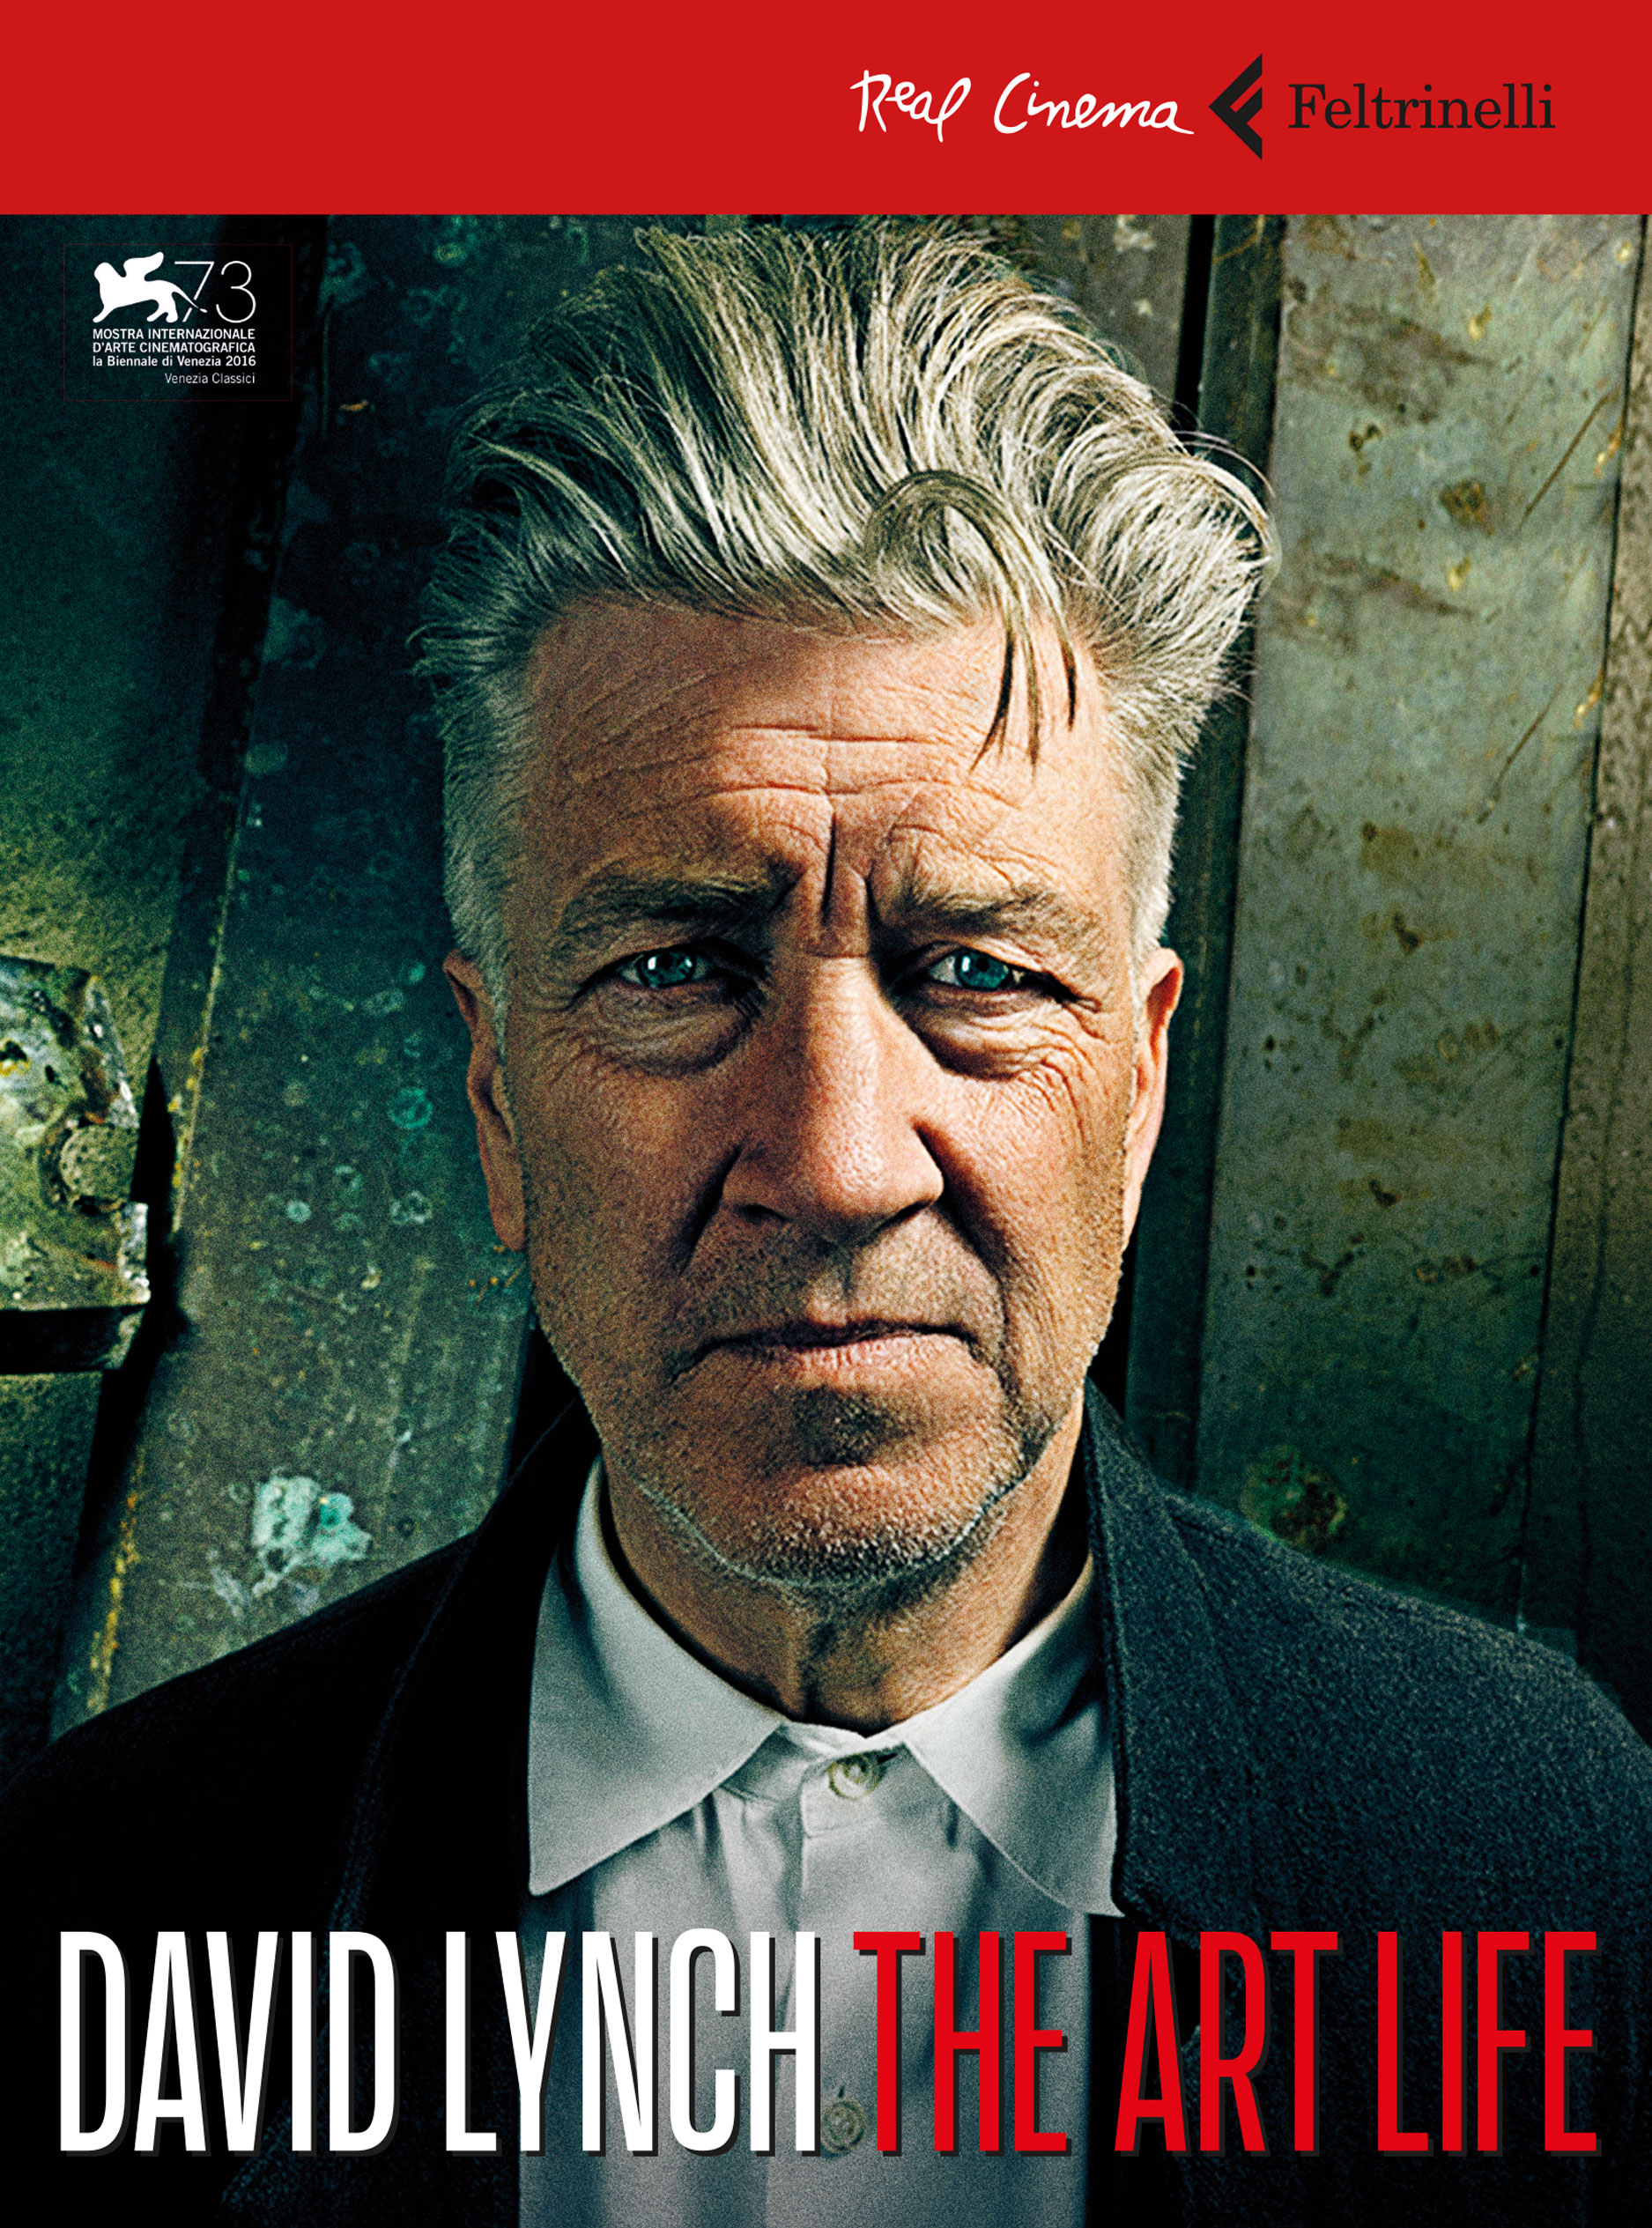 David Lynch - The art life (dvd + libro)